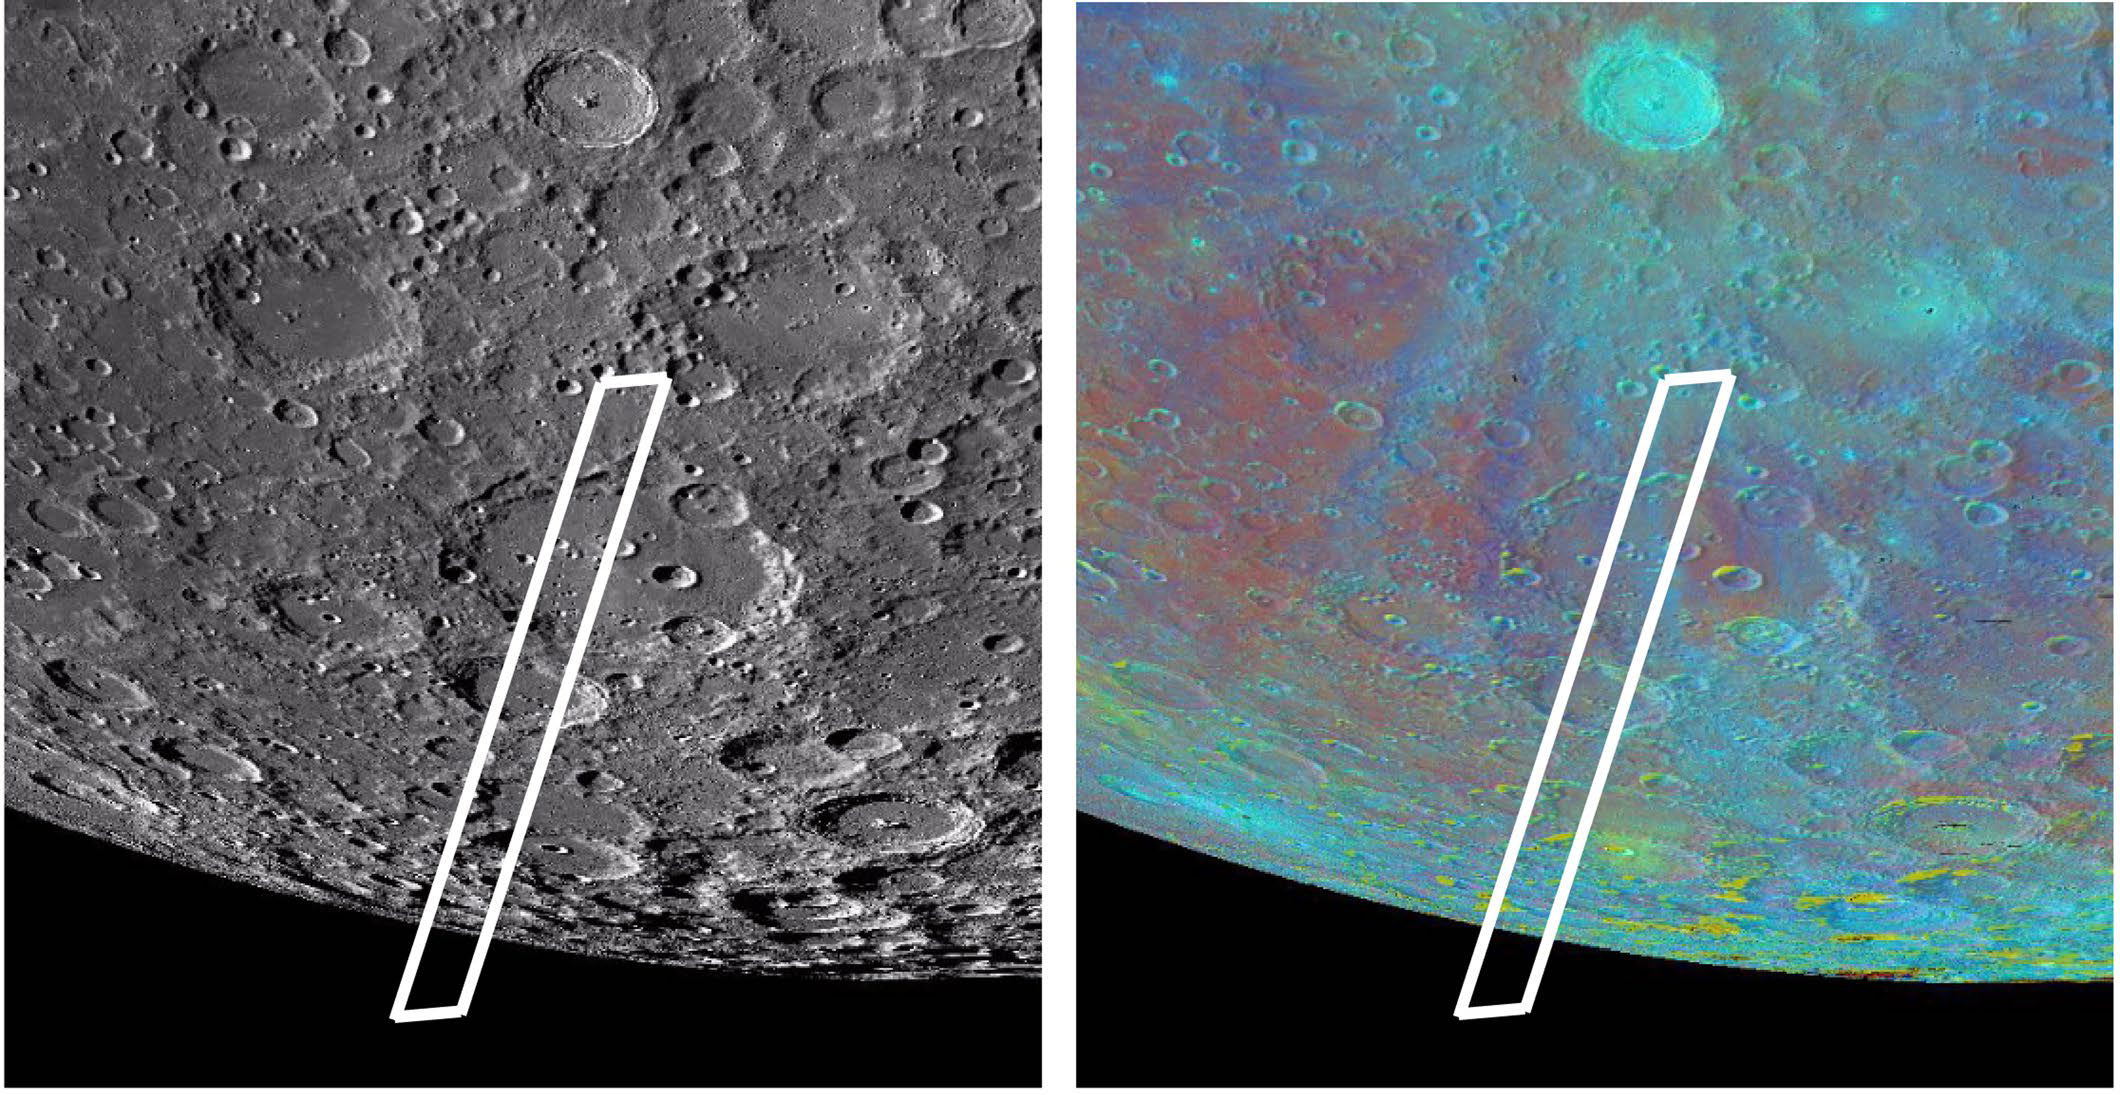 Clavius crater and SOFIA slit area